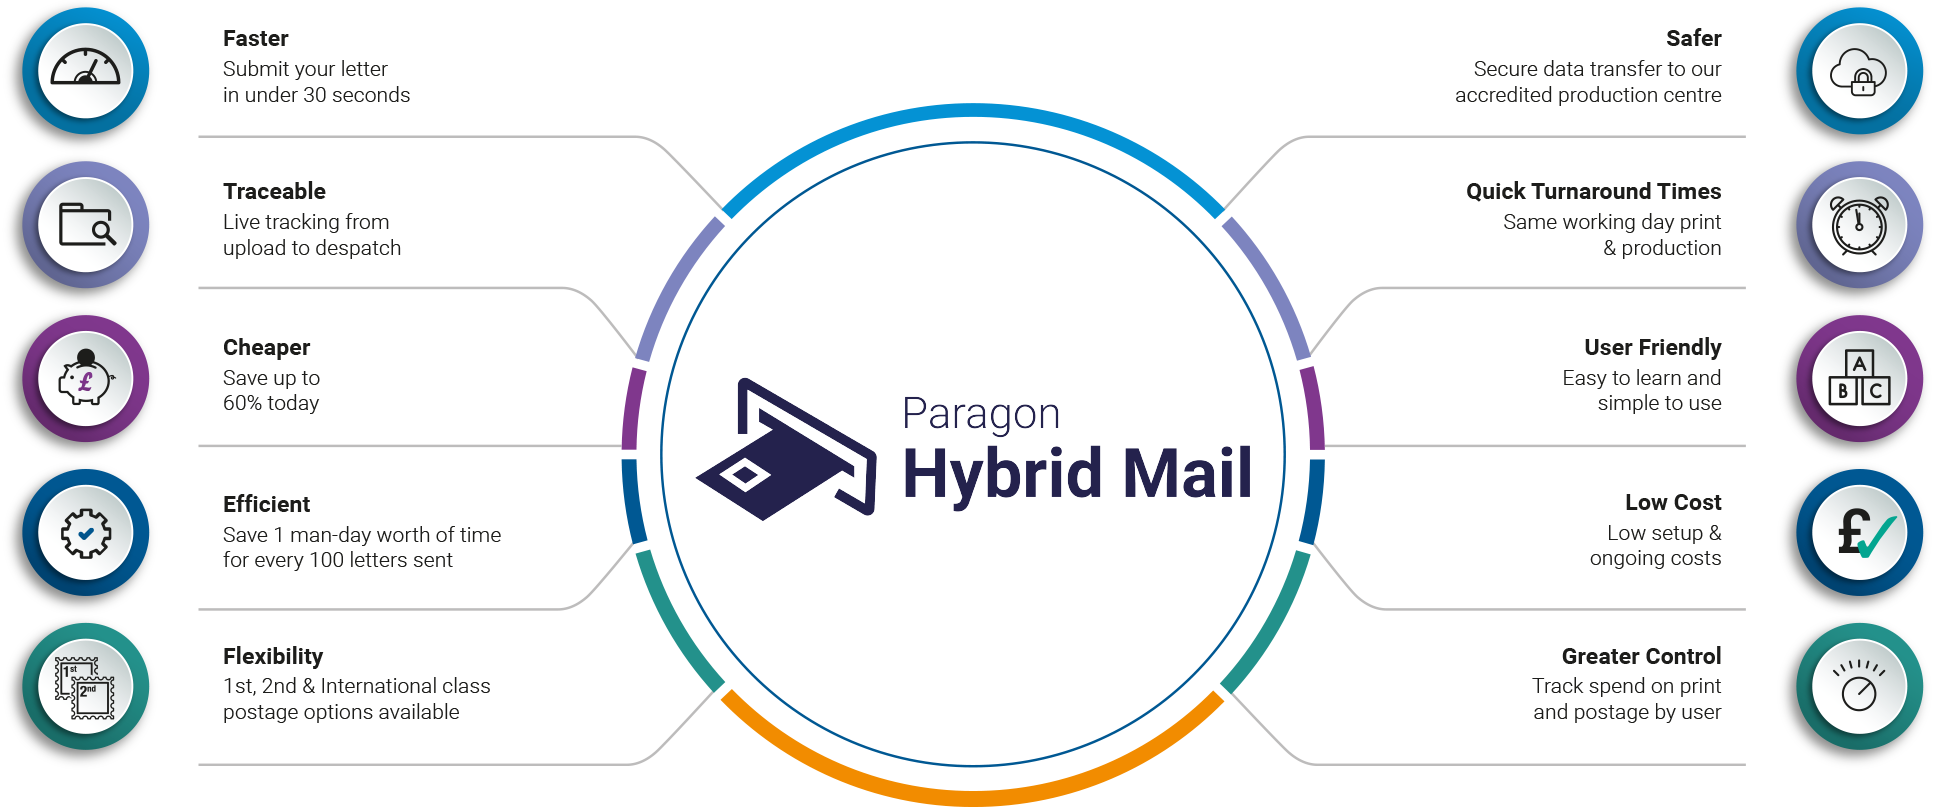 Hybrid Mail Infographic